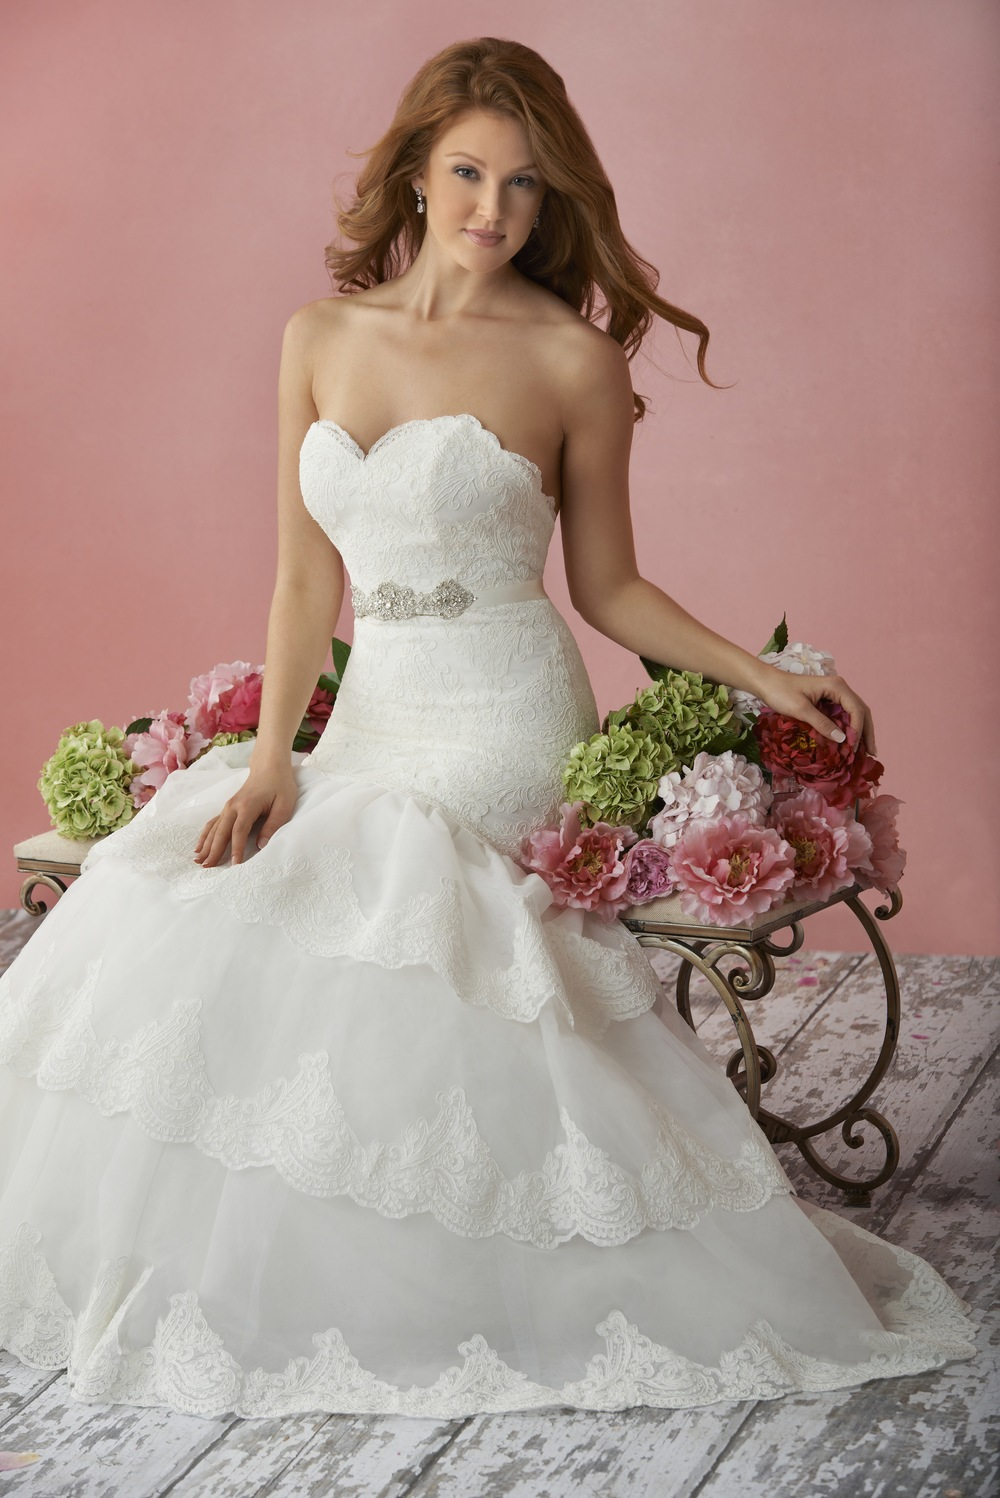 Love this gown? Make an appointment and fall in love all over again at our Victoria Nicole Spring 2014 Trunk Show at Ellie's Bridal Boutique, Feb 14-16